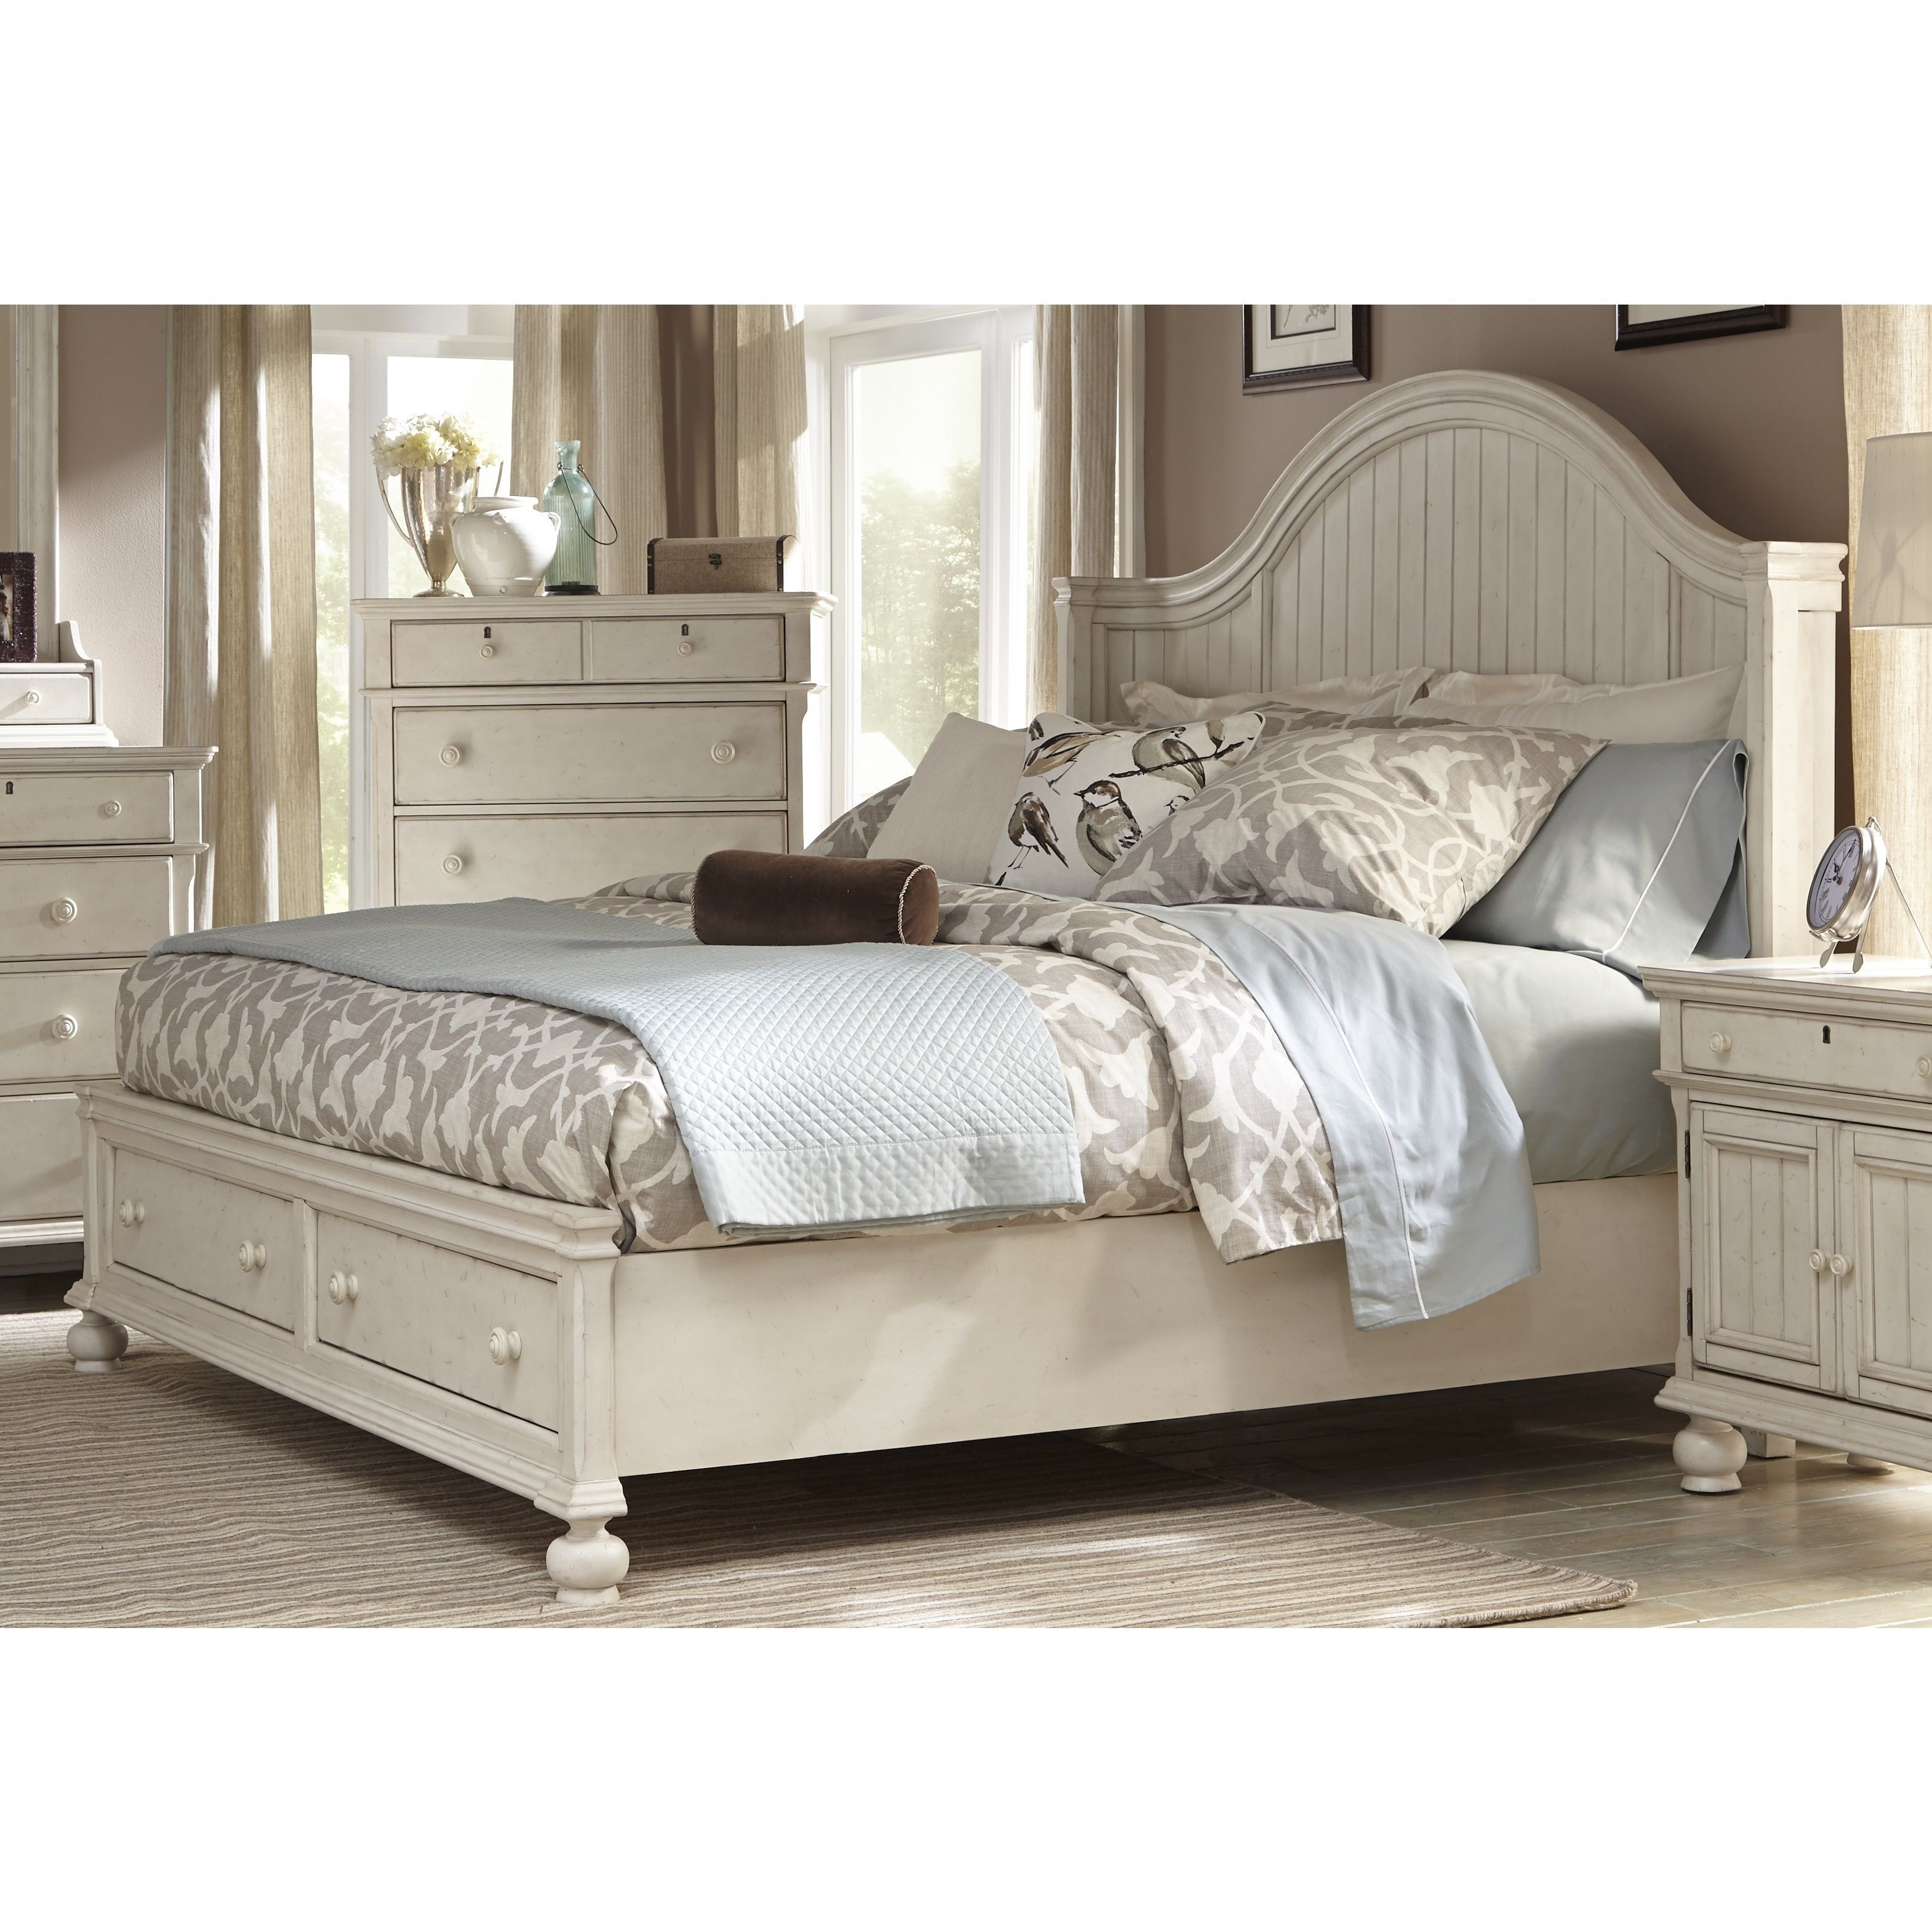 Laguna antique white storage bed by greyson living by greyson living